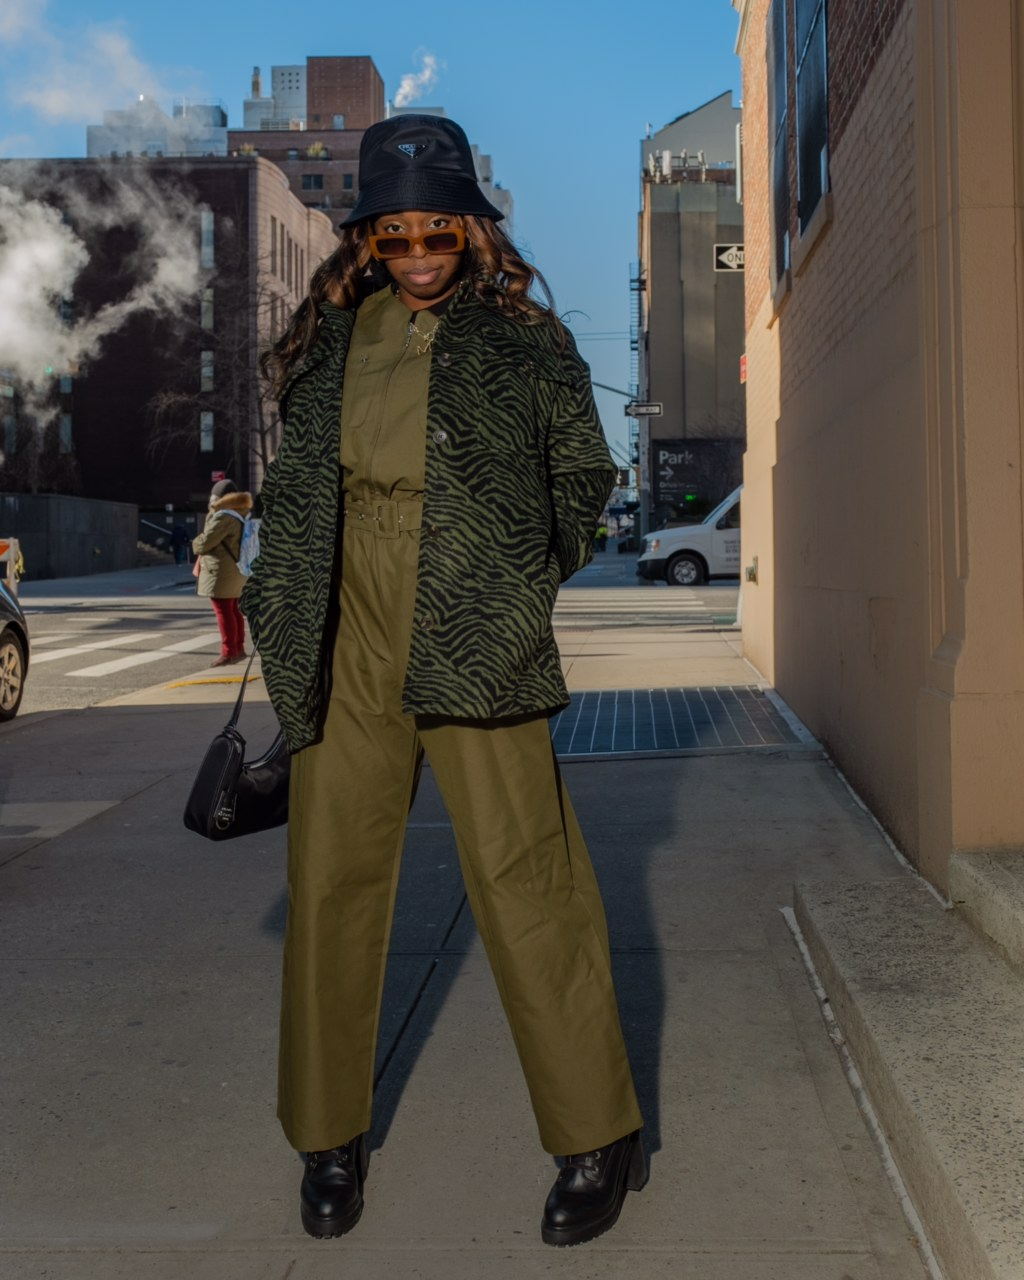 Fashion Bombshell of the Day: Christian from New York